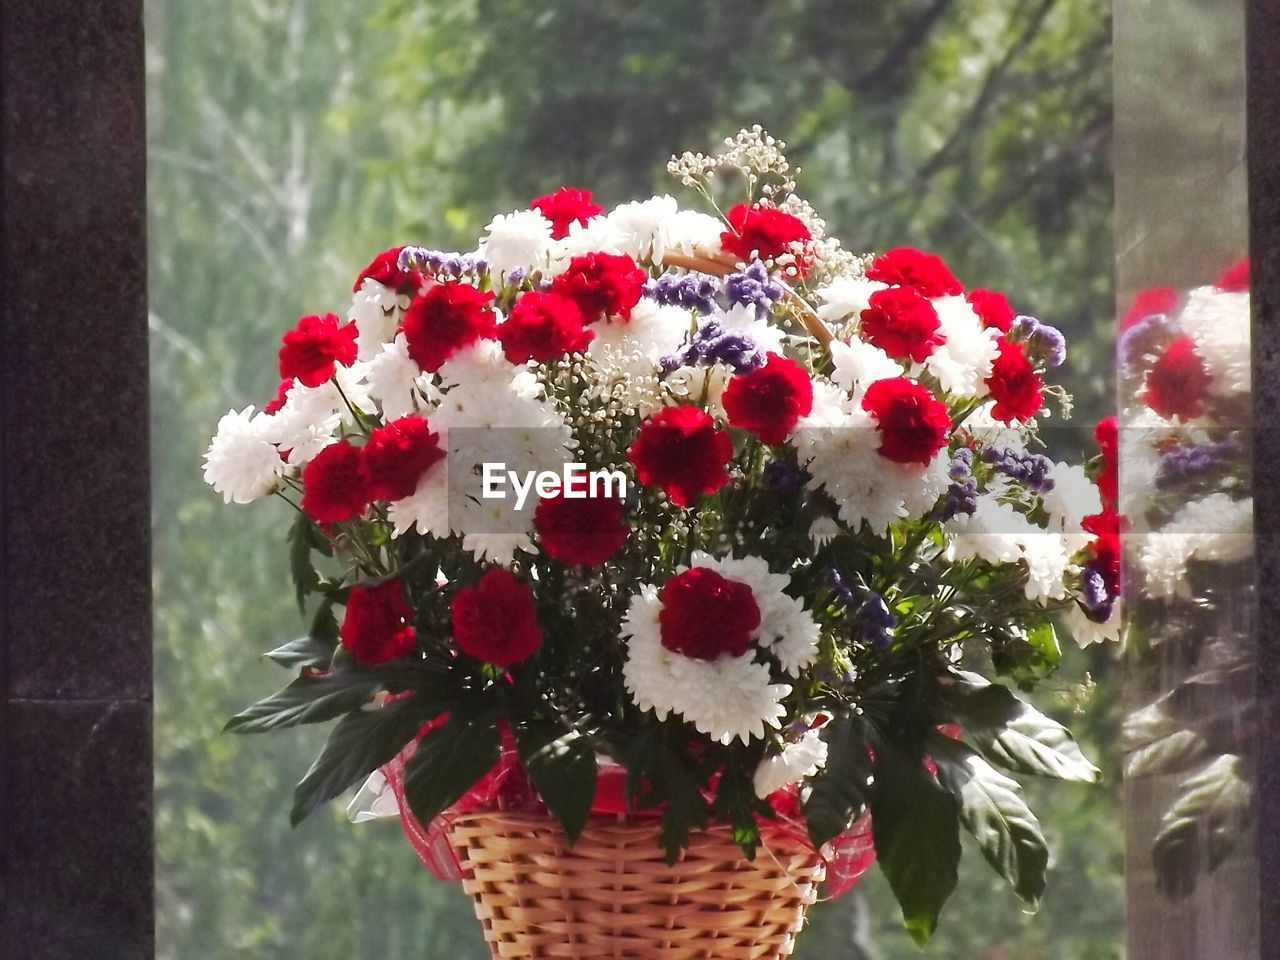 Red and white flowers in wicker basket by window